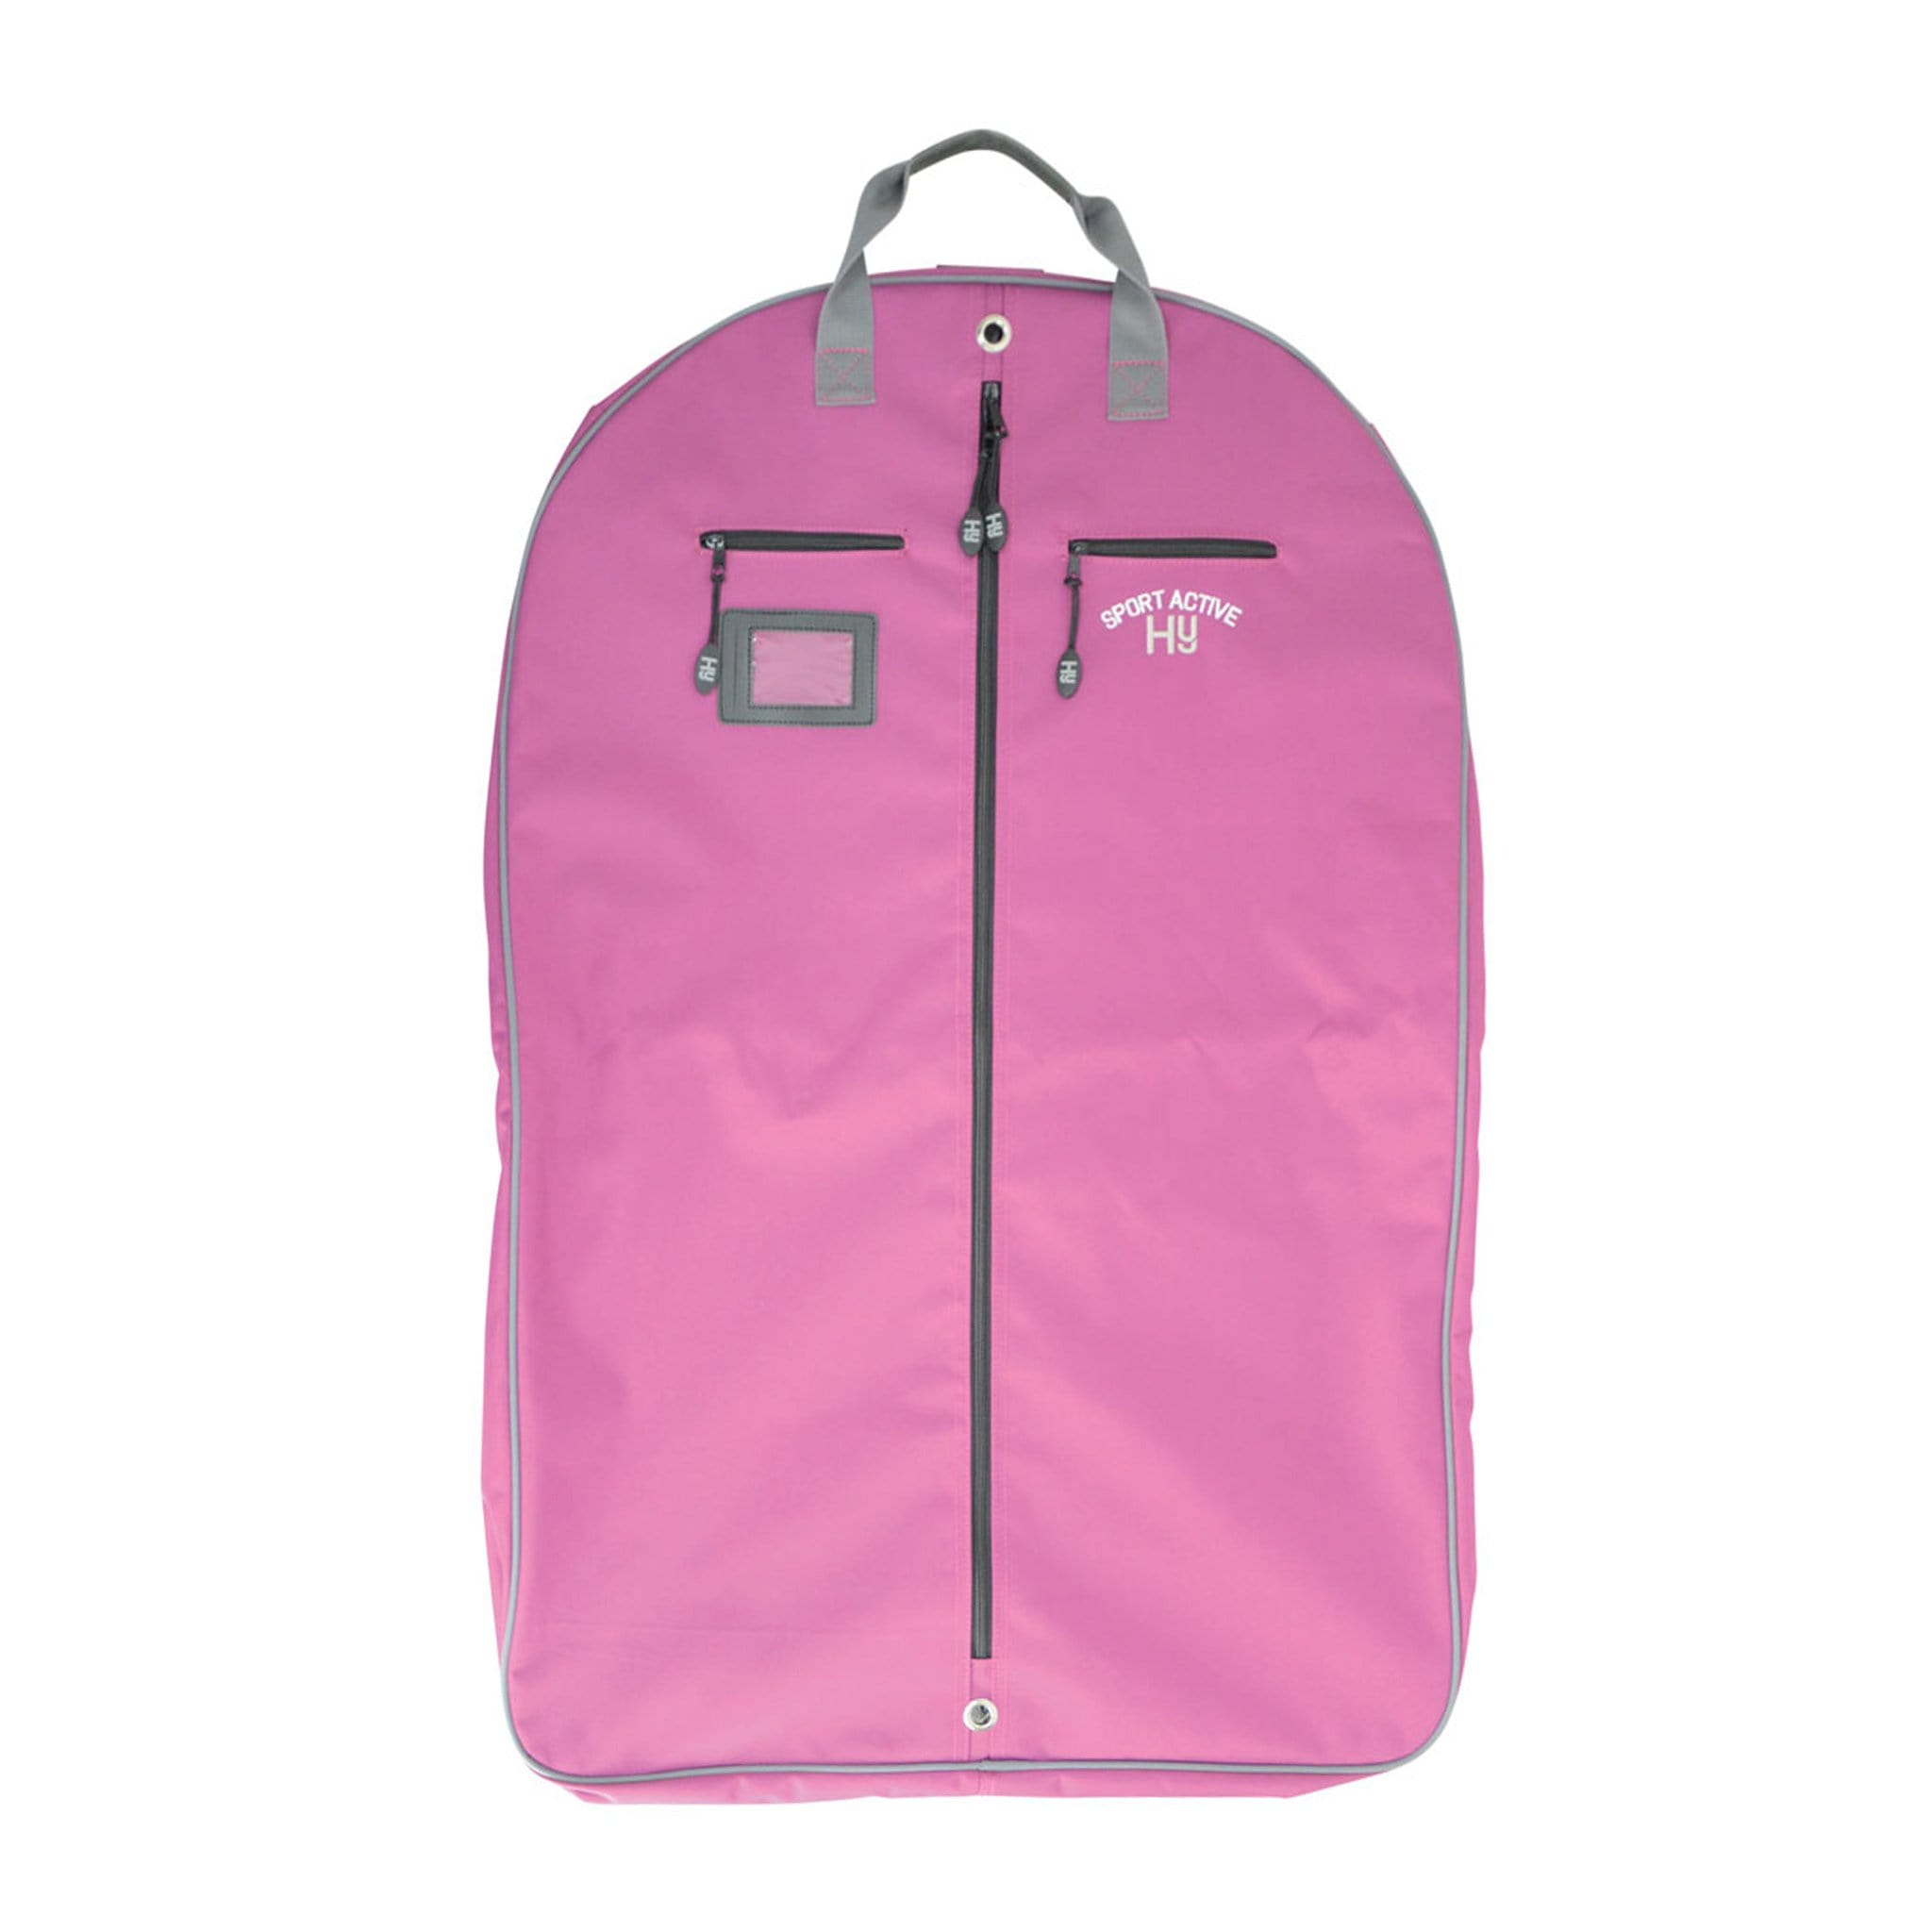 Hy Sport Active Show Jacket Bag 18753 Port Royal